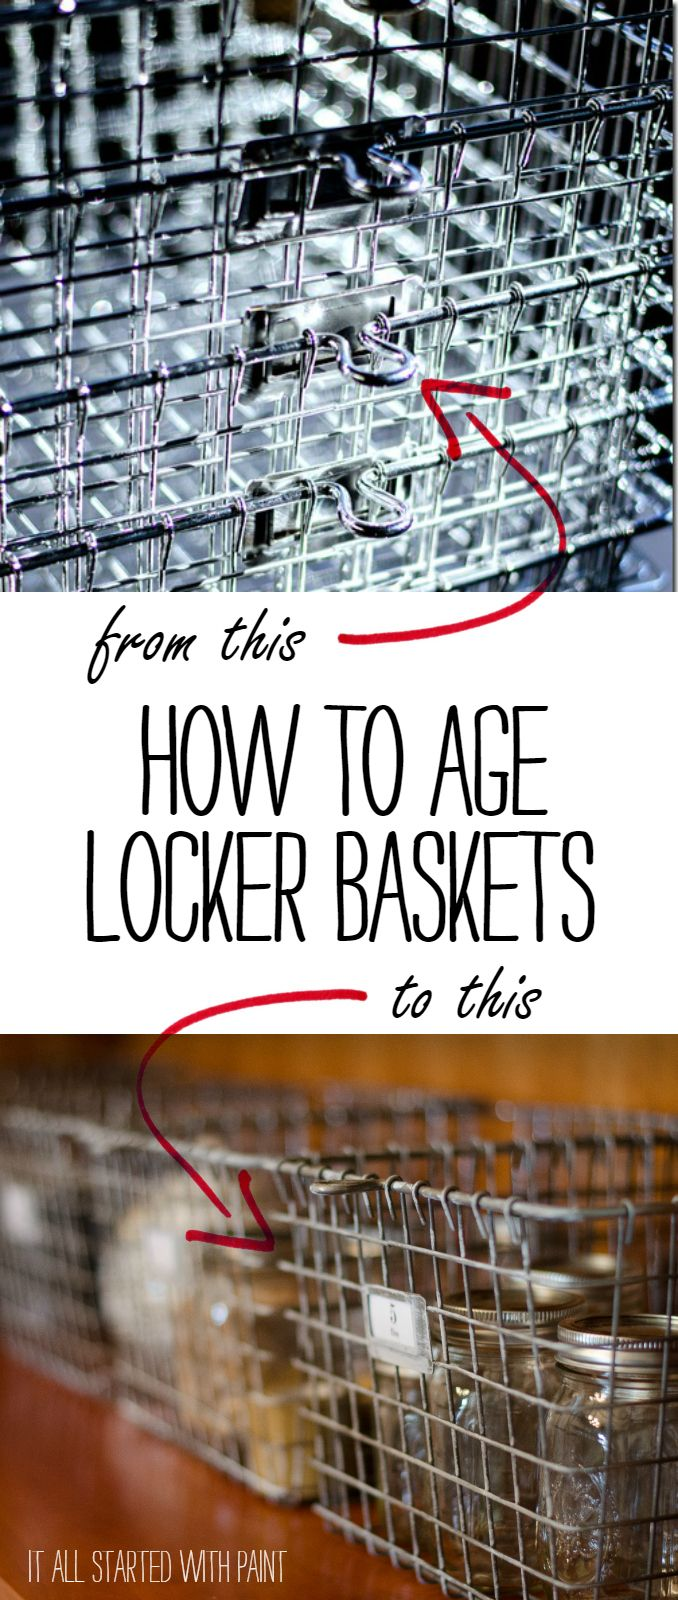 How To Turn Shiny, New Locker Baskets Into Aged, Vintage Look